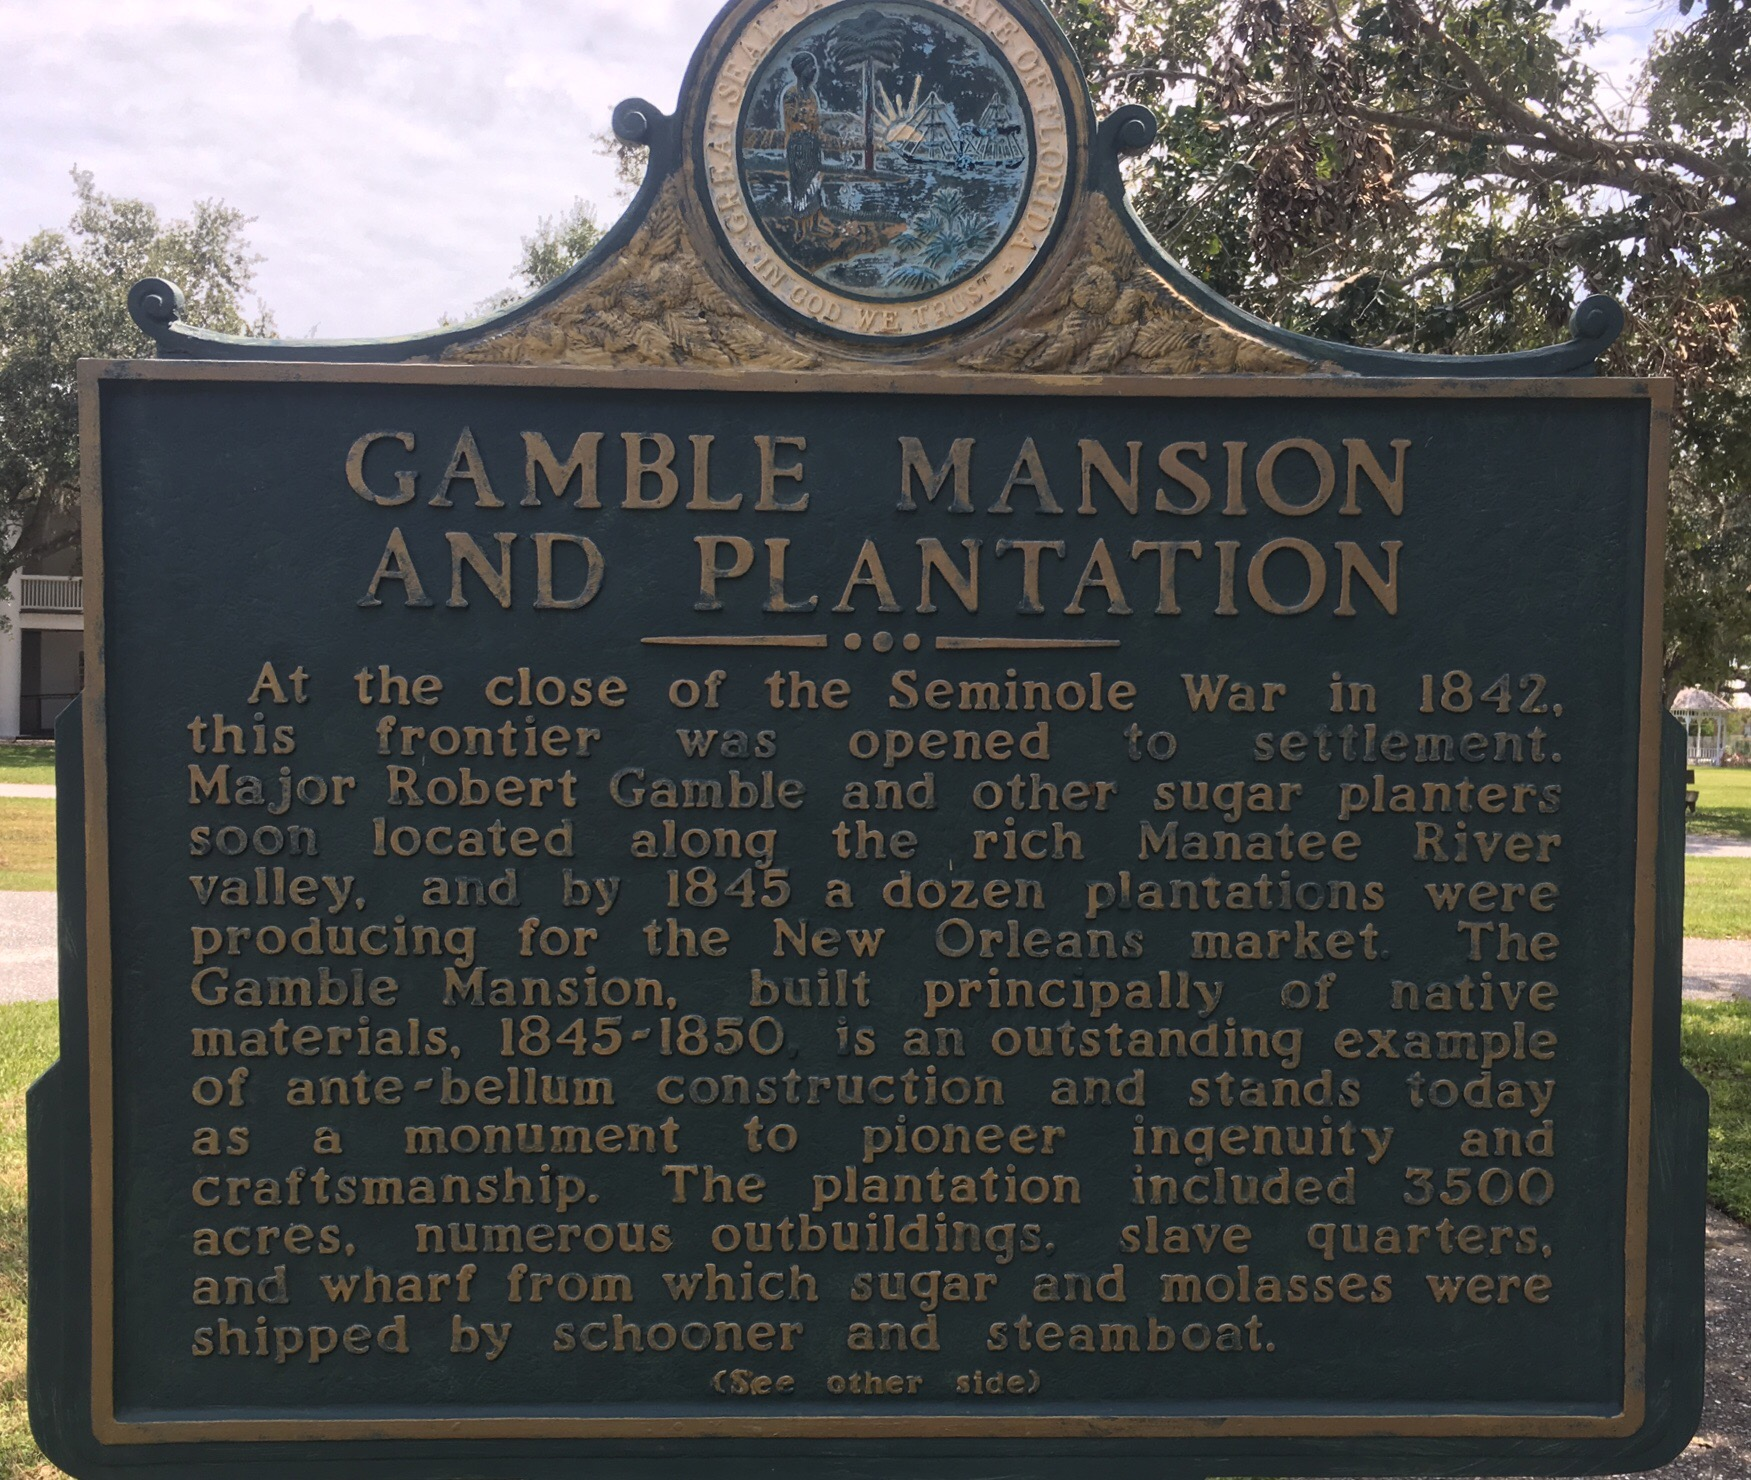 Gamble Mansion & Plantation Plaquard, Side 1